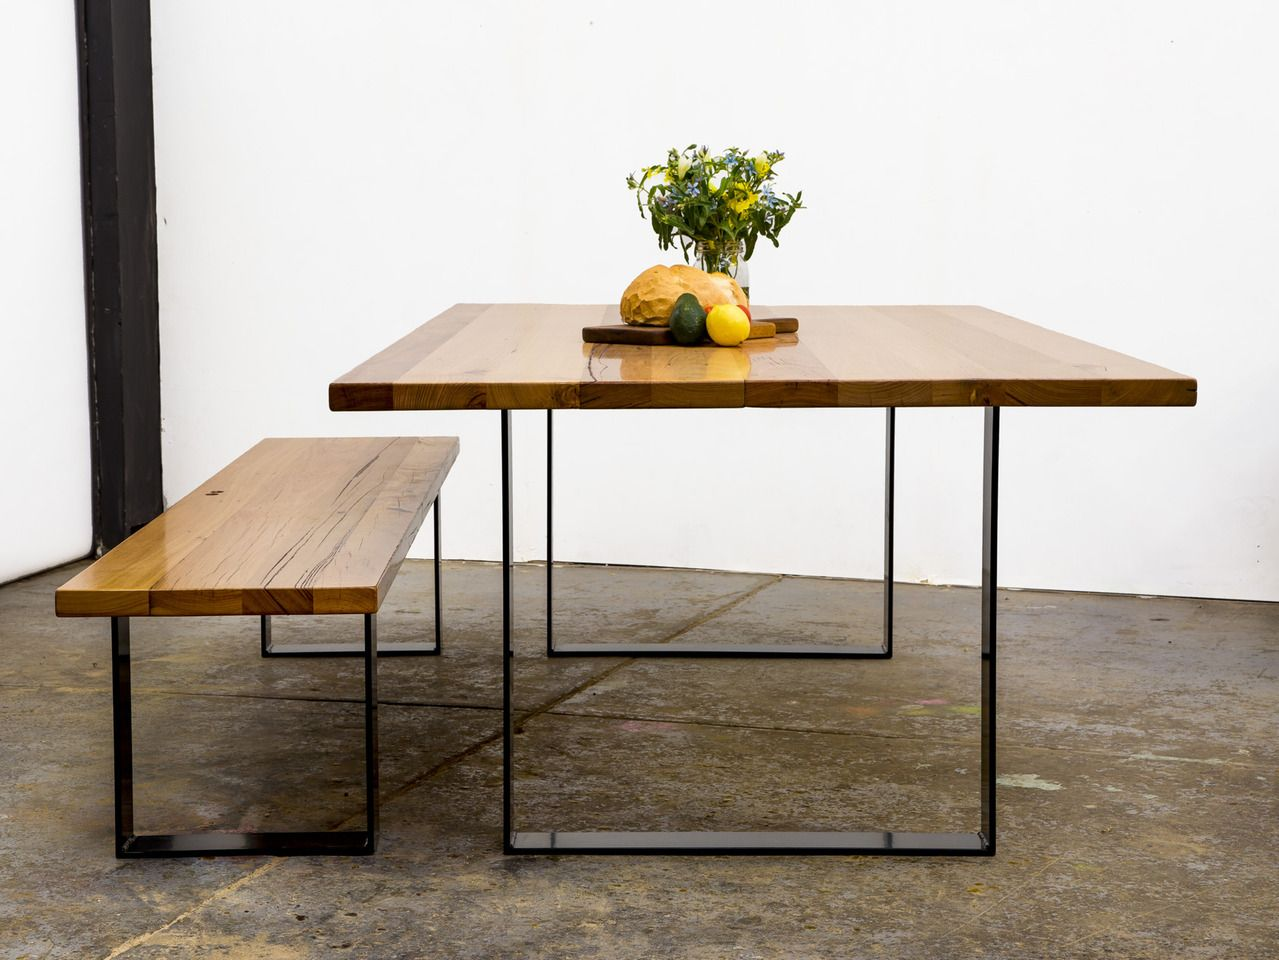 Get 20  Square tables ideas on Pinterest without signing up   Square  dinning room table  Square dining tables and Square kitchen tablesGet 20  Square tables ideas on Pinterest without signing up  . Modern Dining Room Furniture Australia. Home Design Ideas